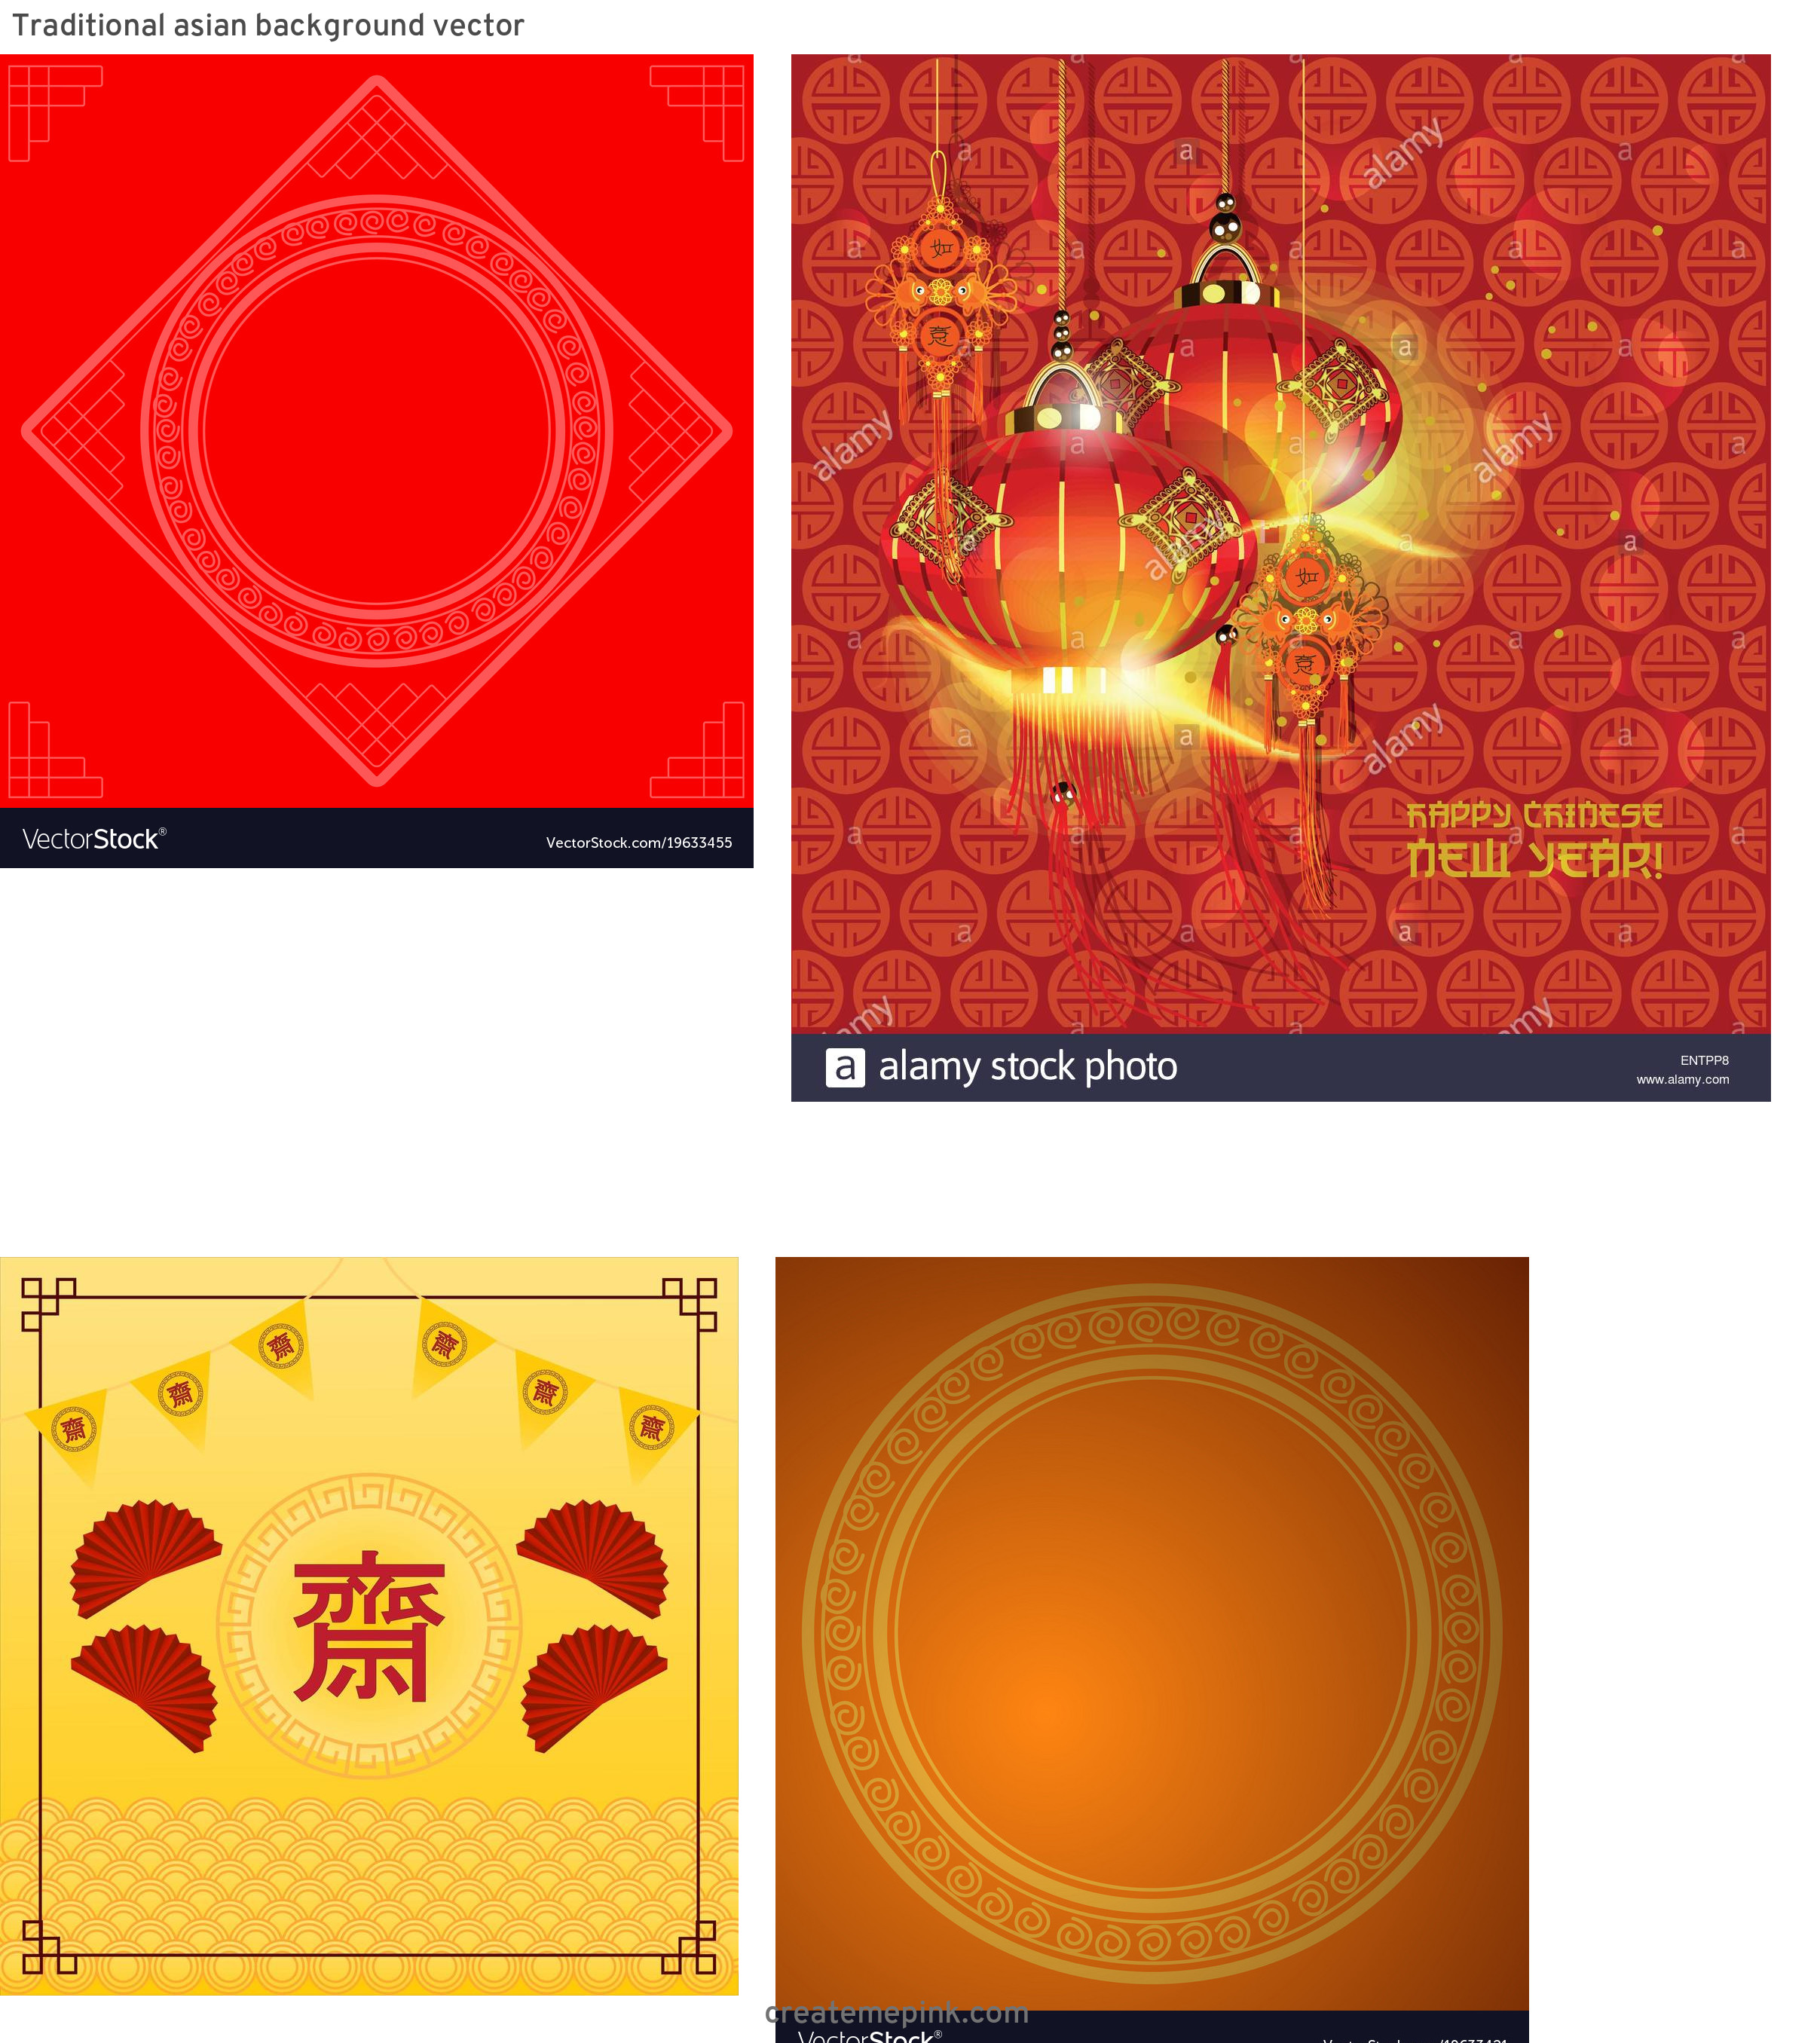 Asian Background Vector: Traditional Asian Background Vector